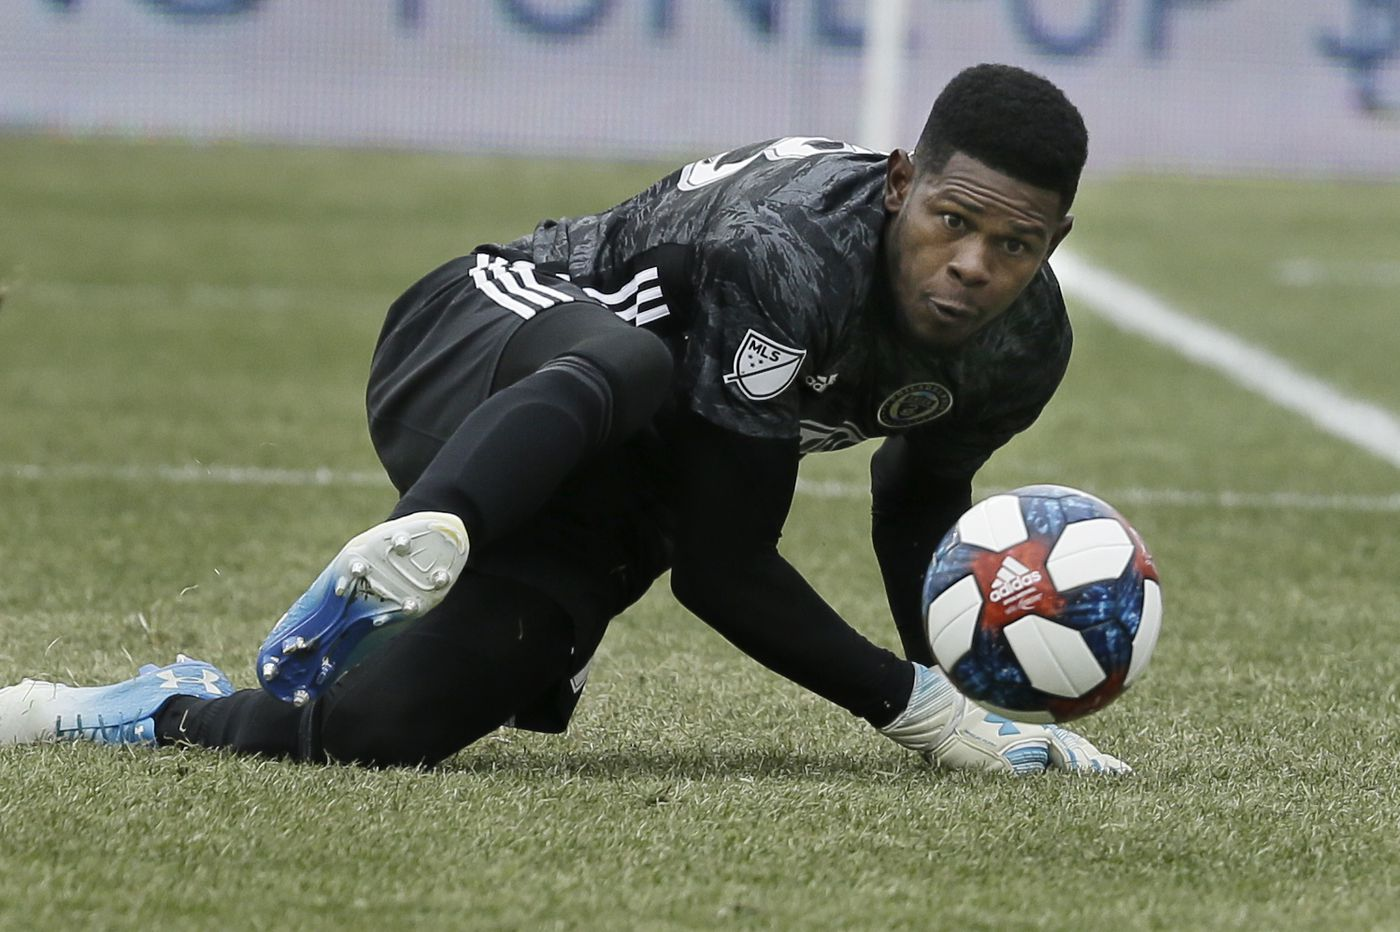 Andre Blake rebounds from viral Jamaica goalkeeping gaffe with shutout for Union